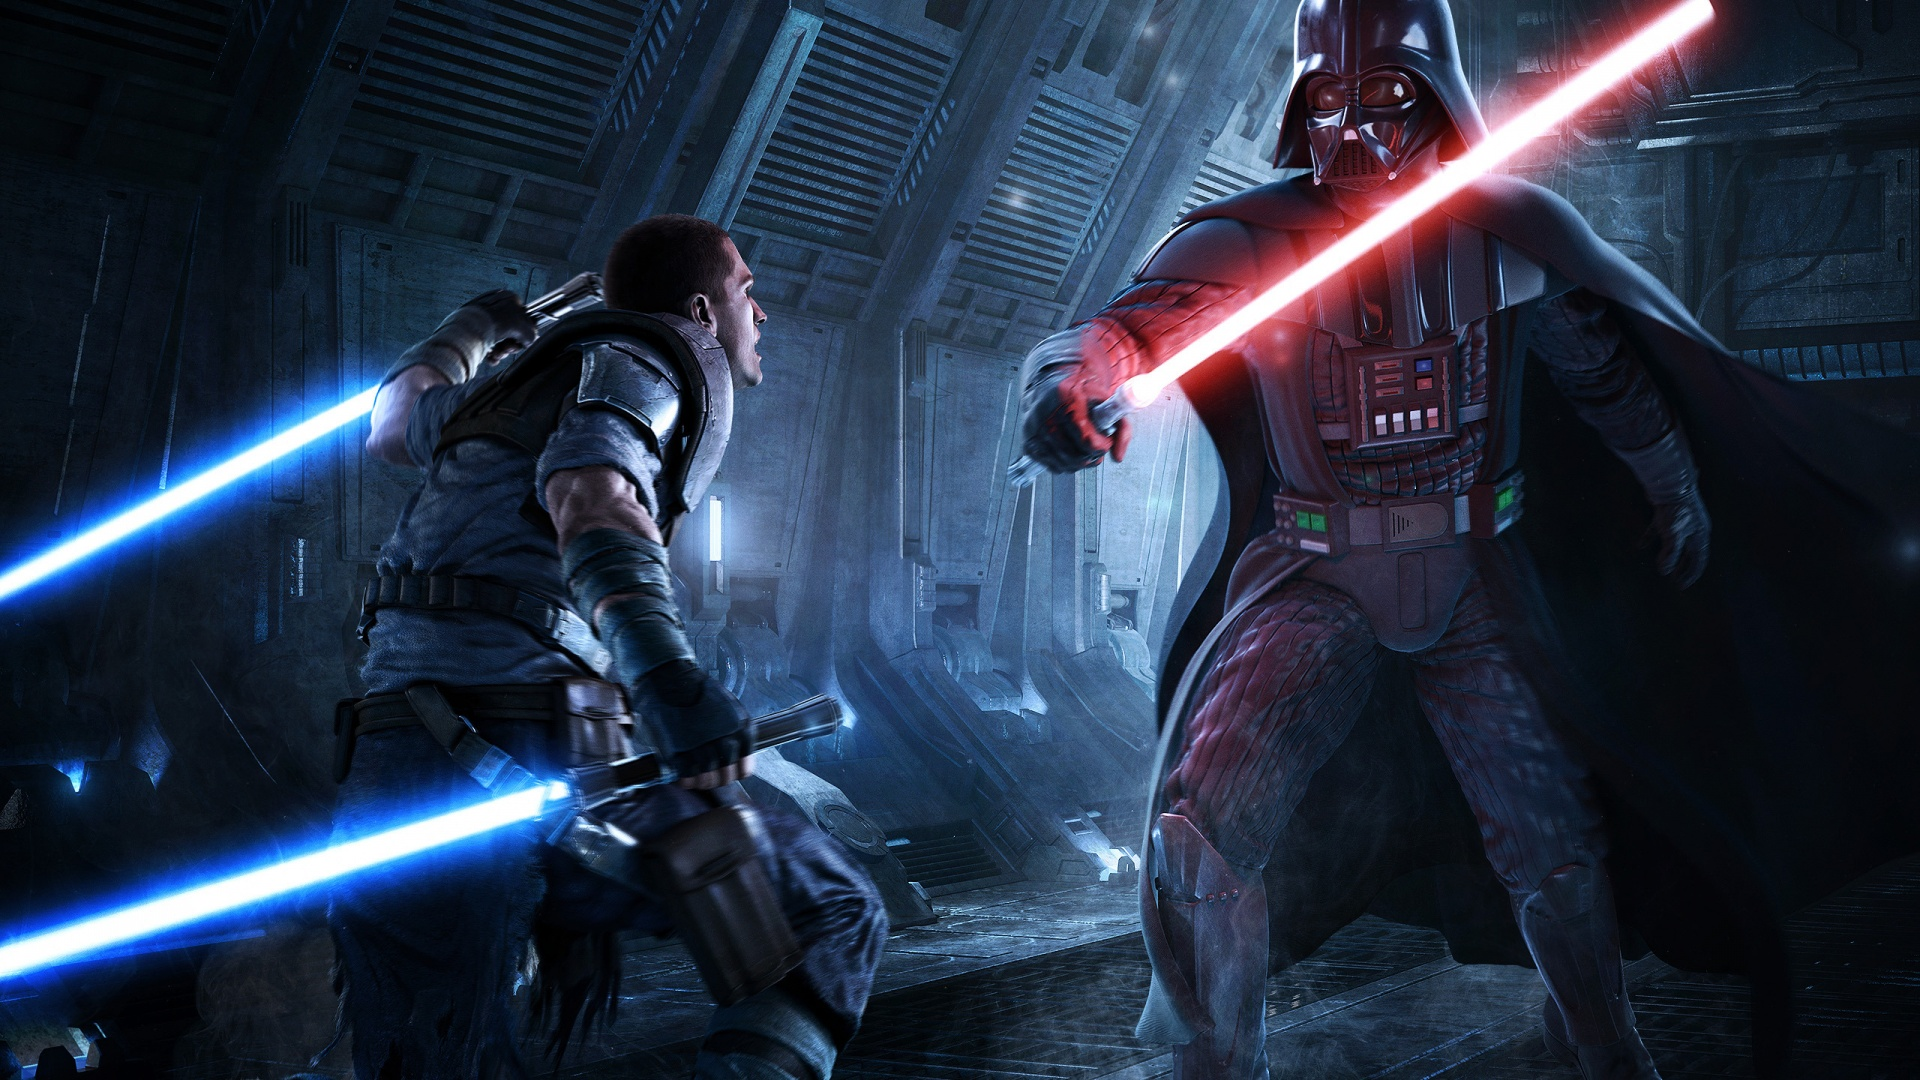 star wars%3A force unleashed